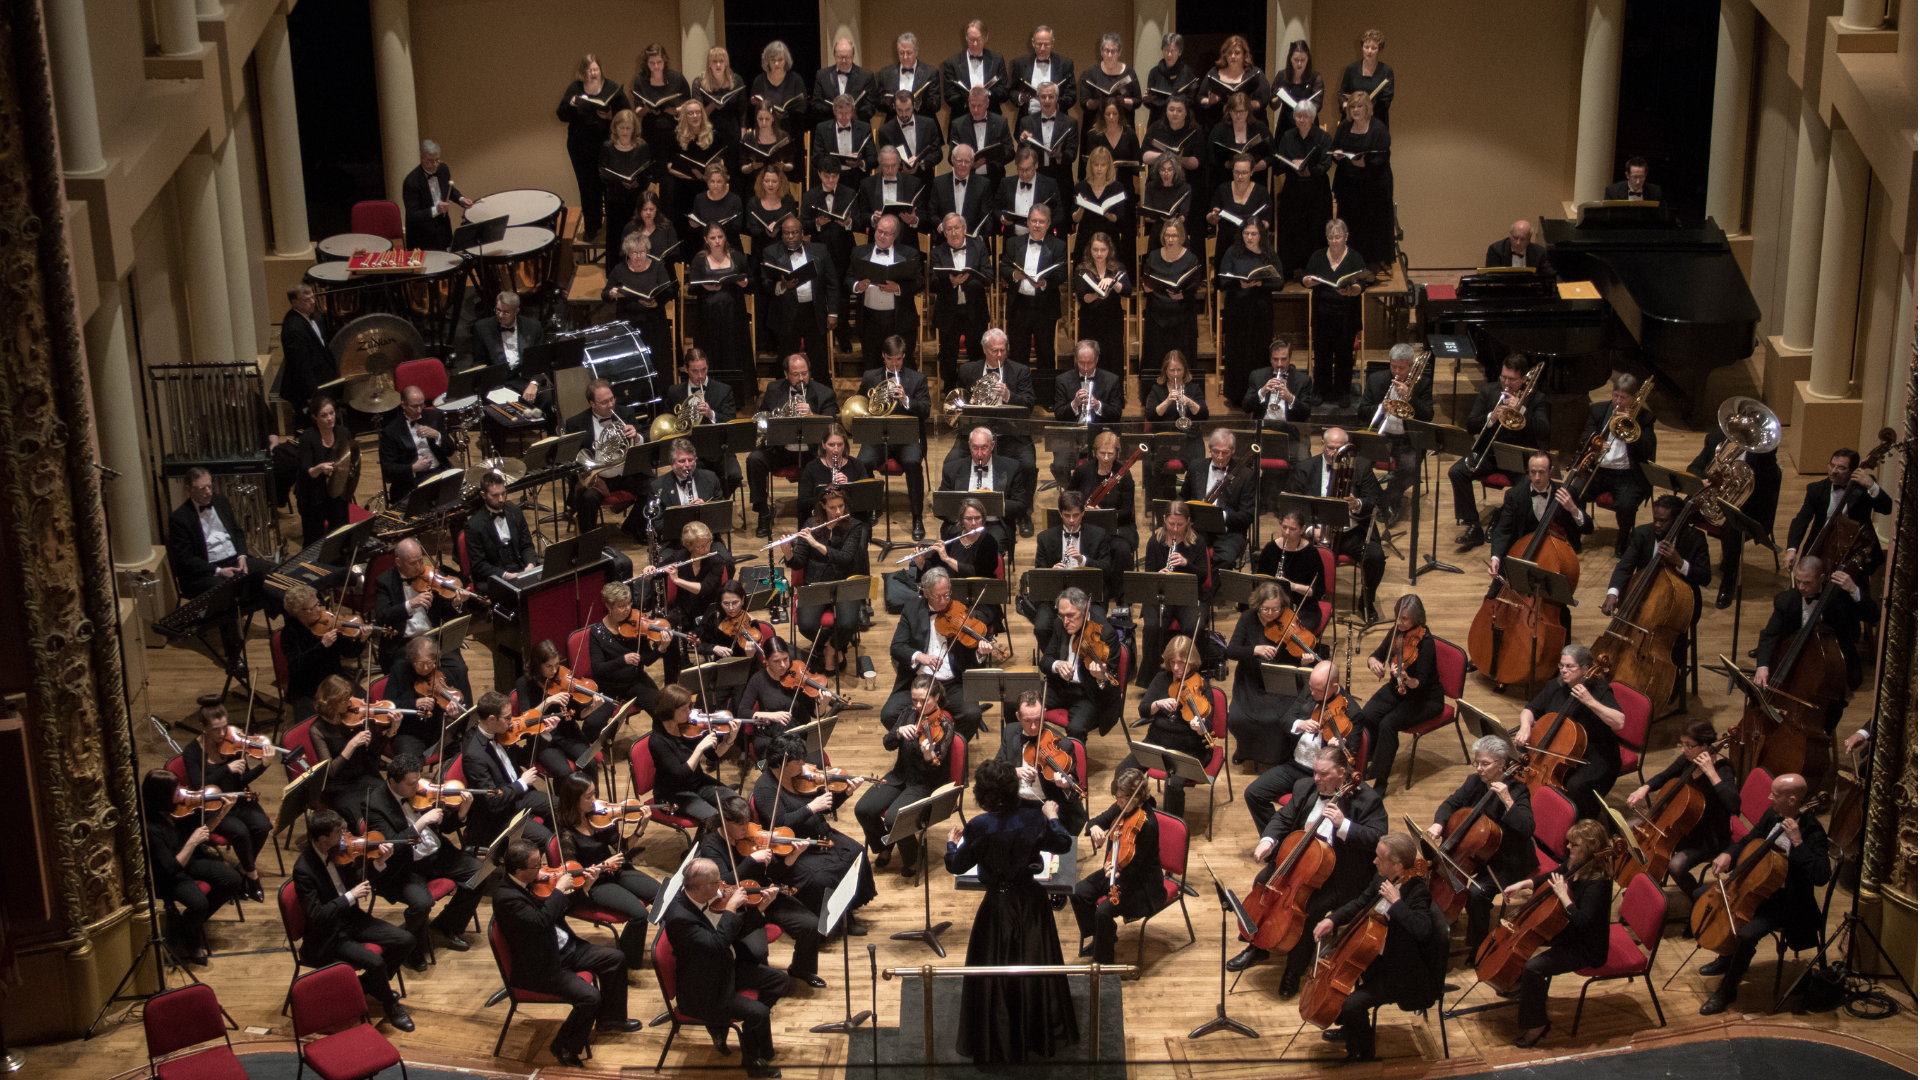 The Allentown Symphony Orchestra